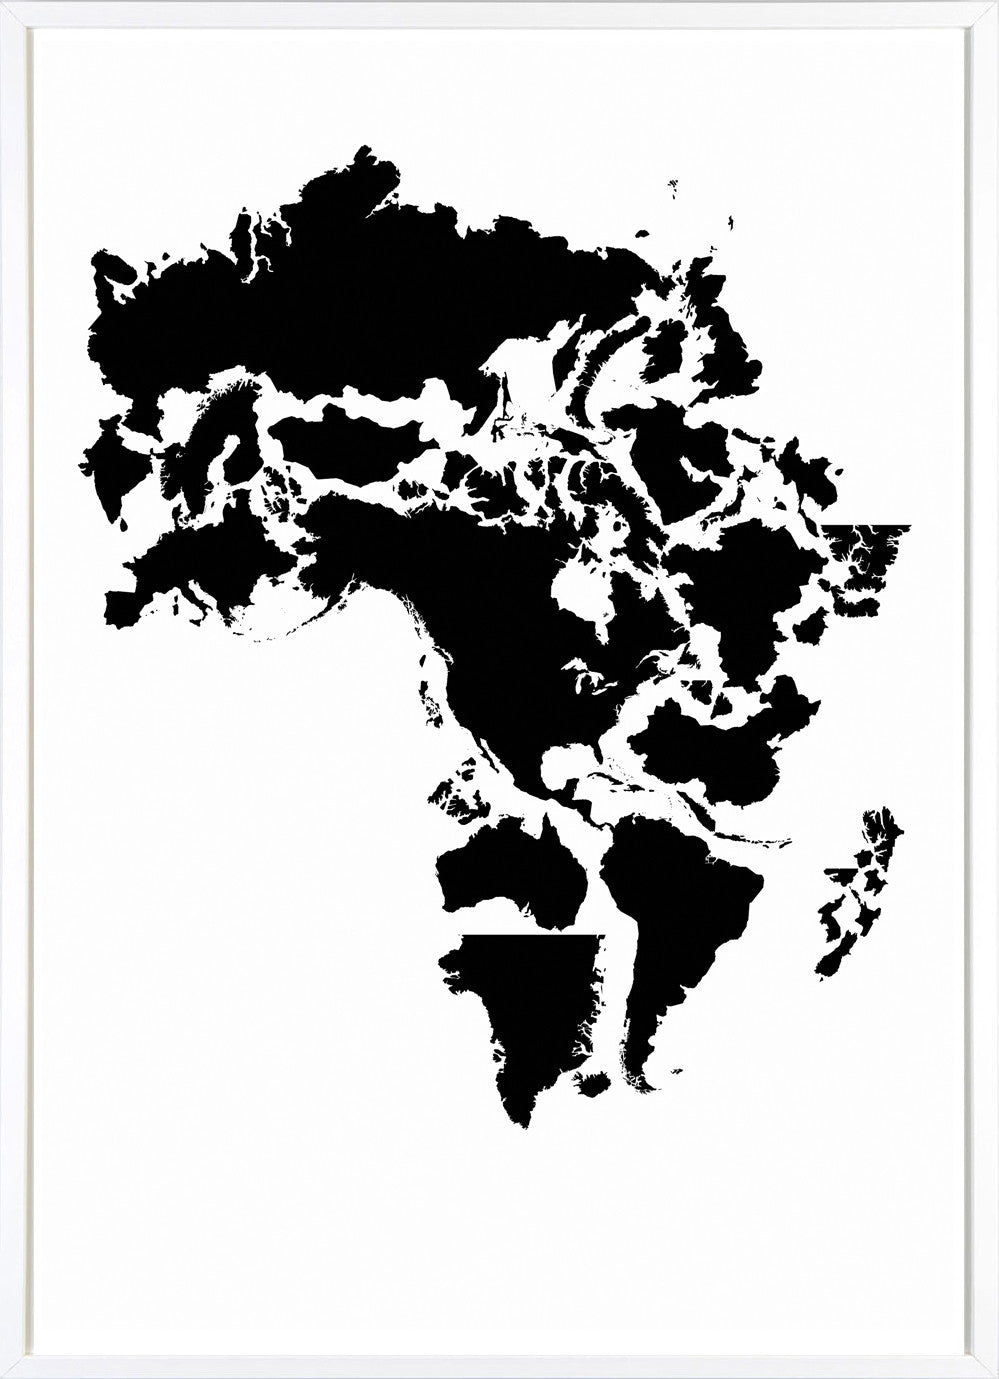 Africa (Black and White)